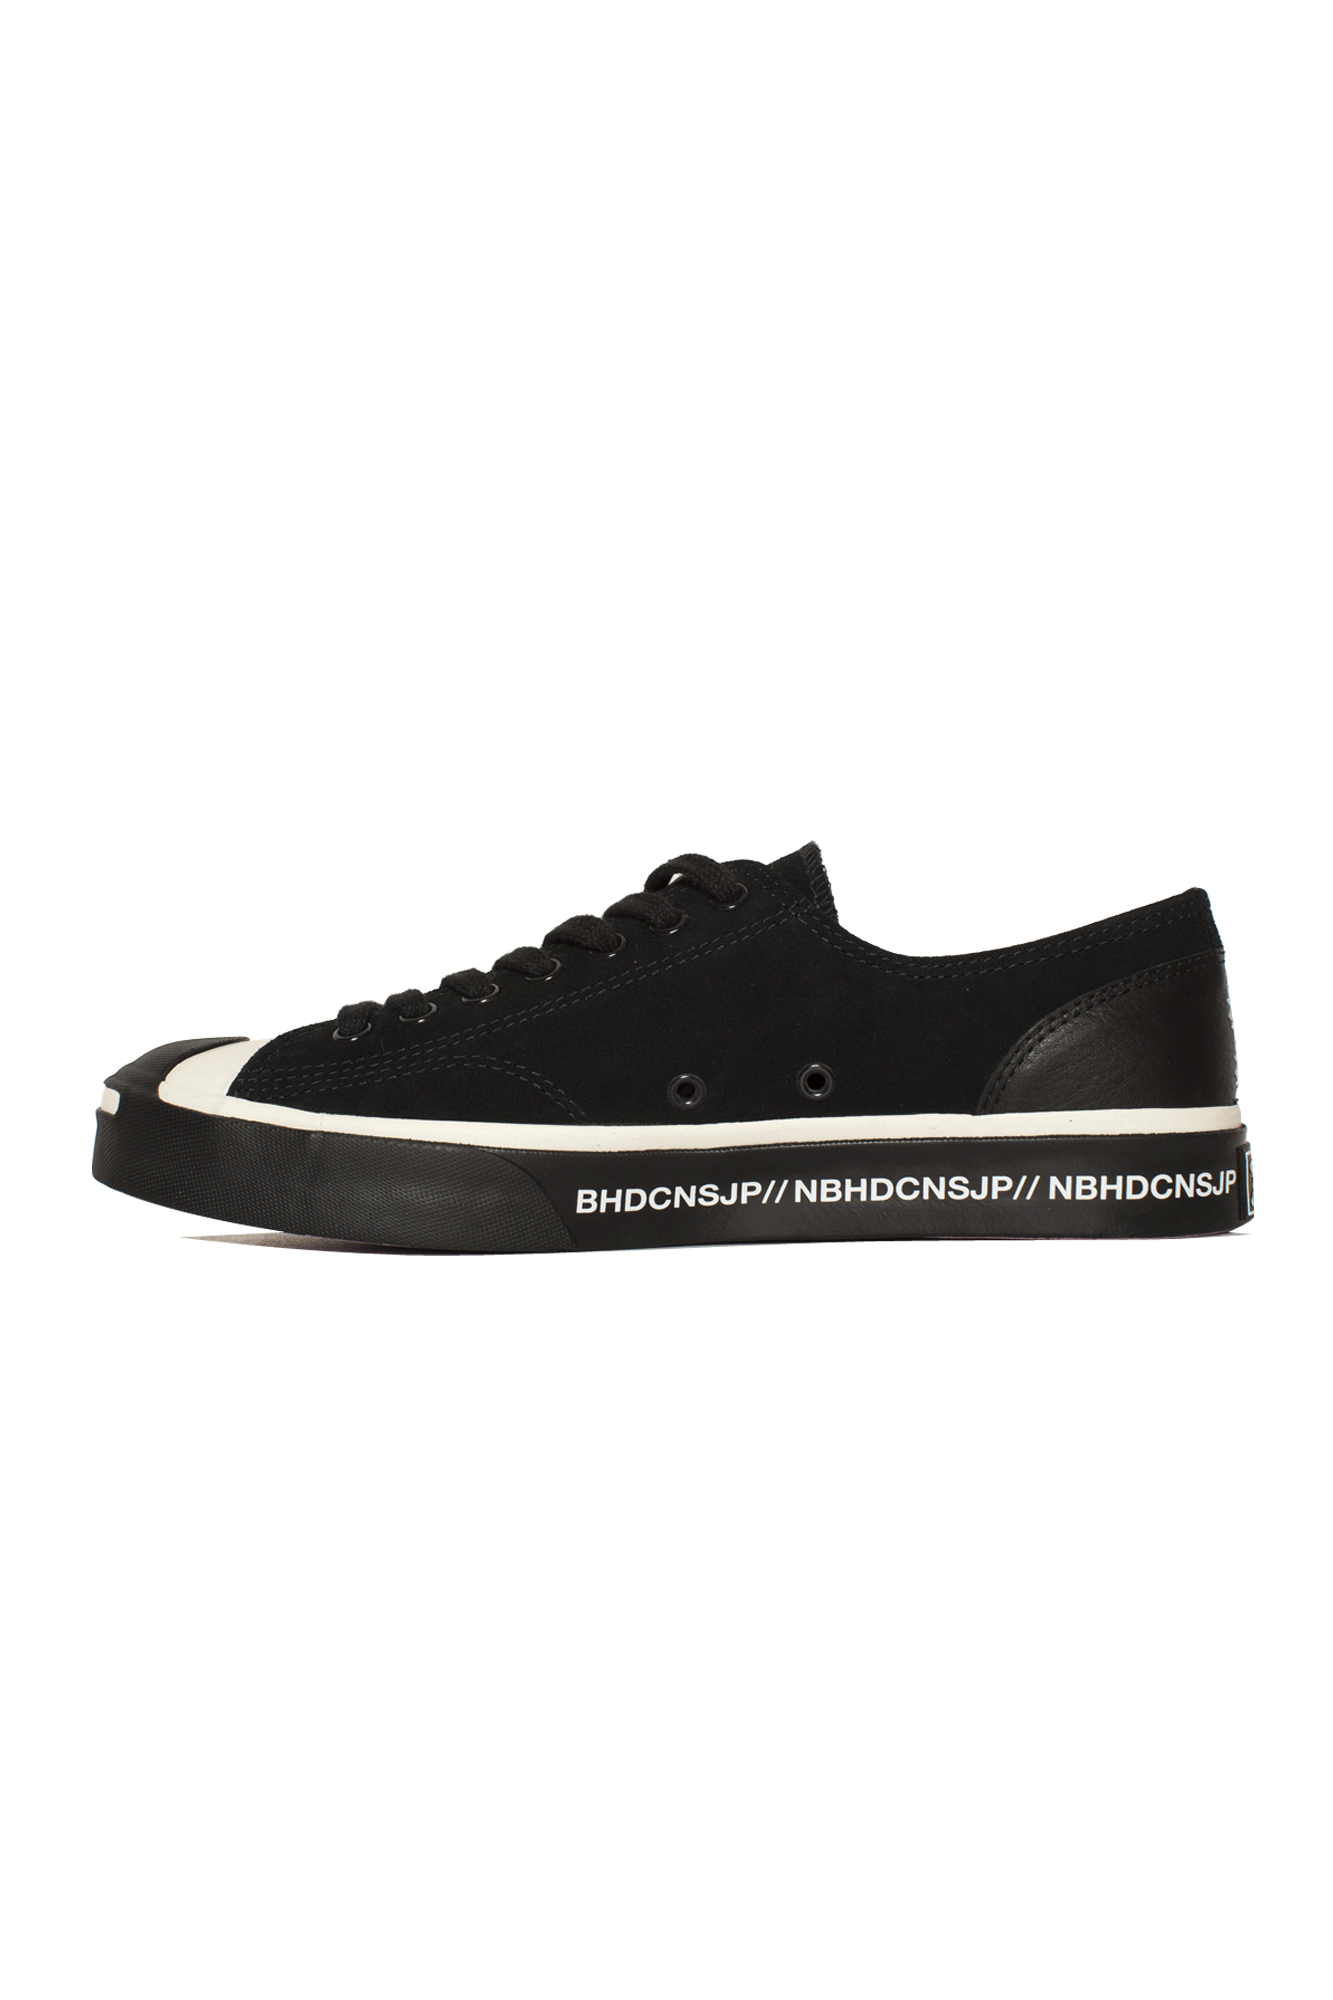 Converse x NEIGHBORHOOD Jack Purcell Nero